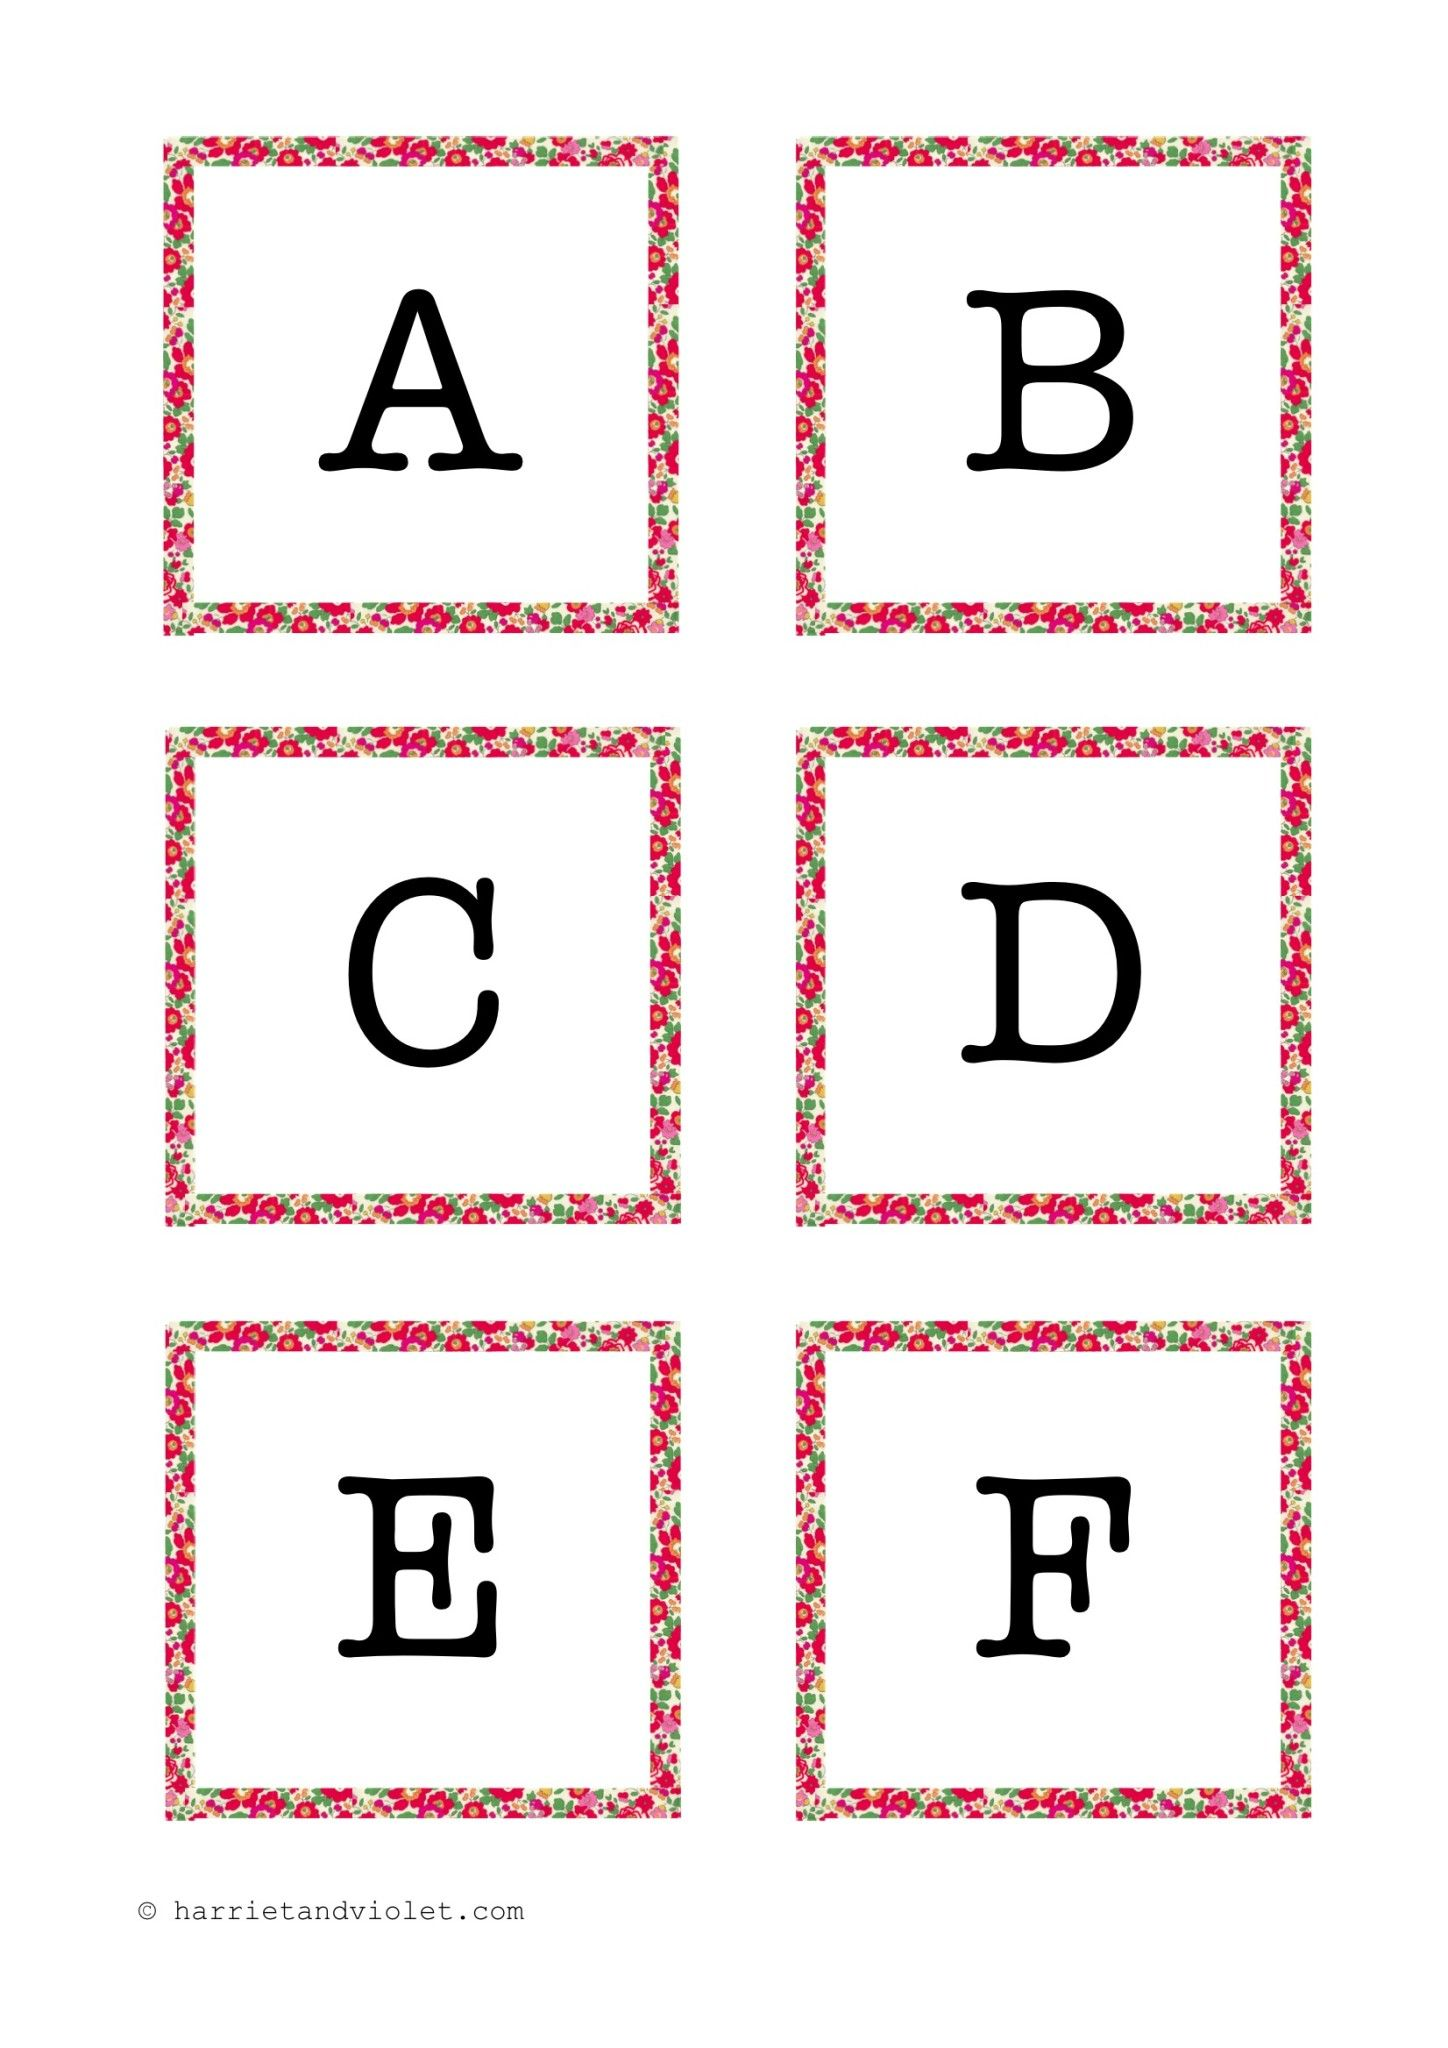 Instant Display Lettering A Z Liberty Fabric Border